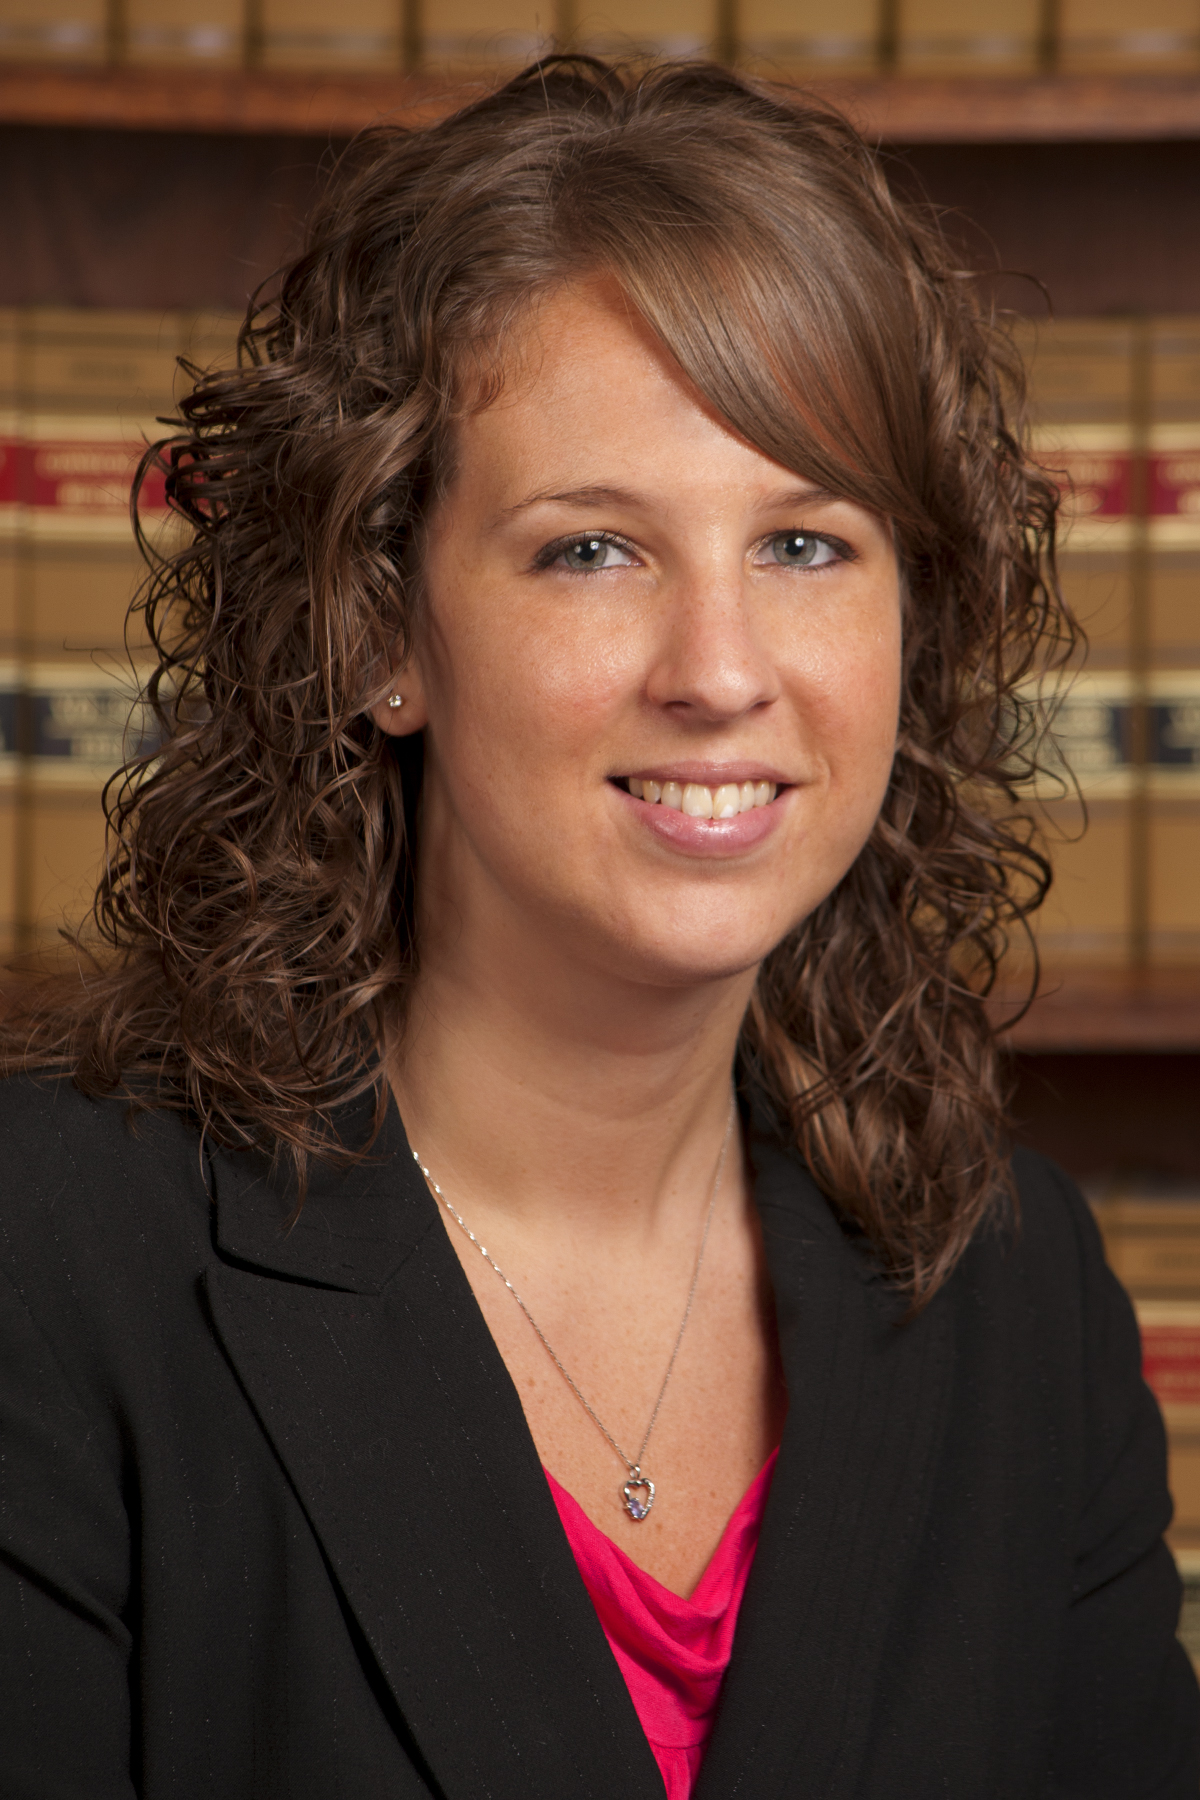 Carrie M. Coulombe, Esq.